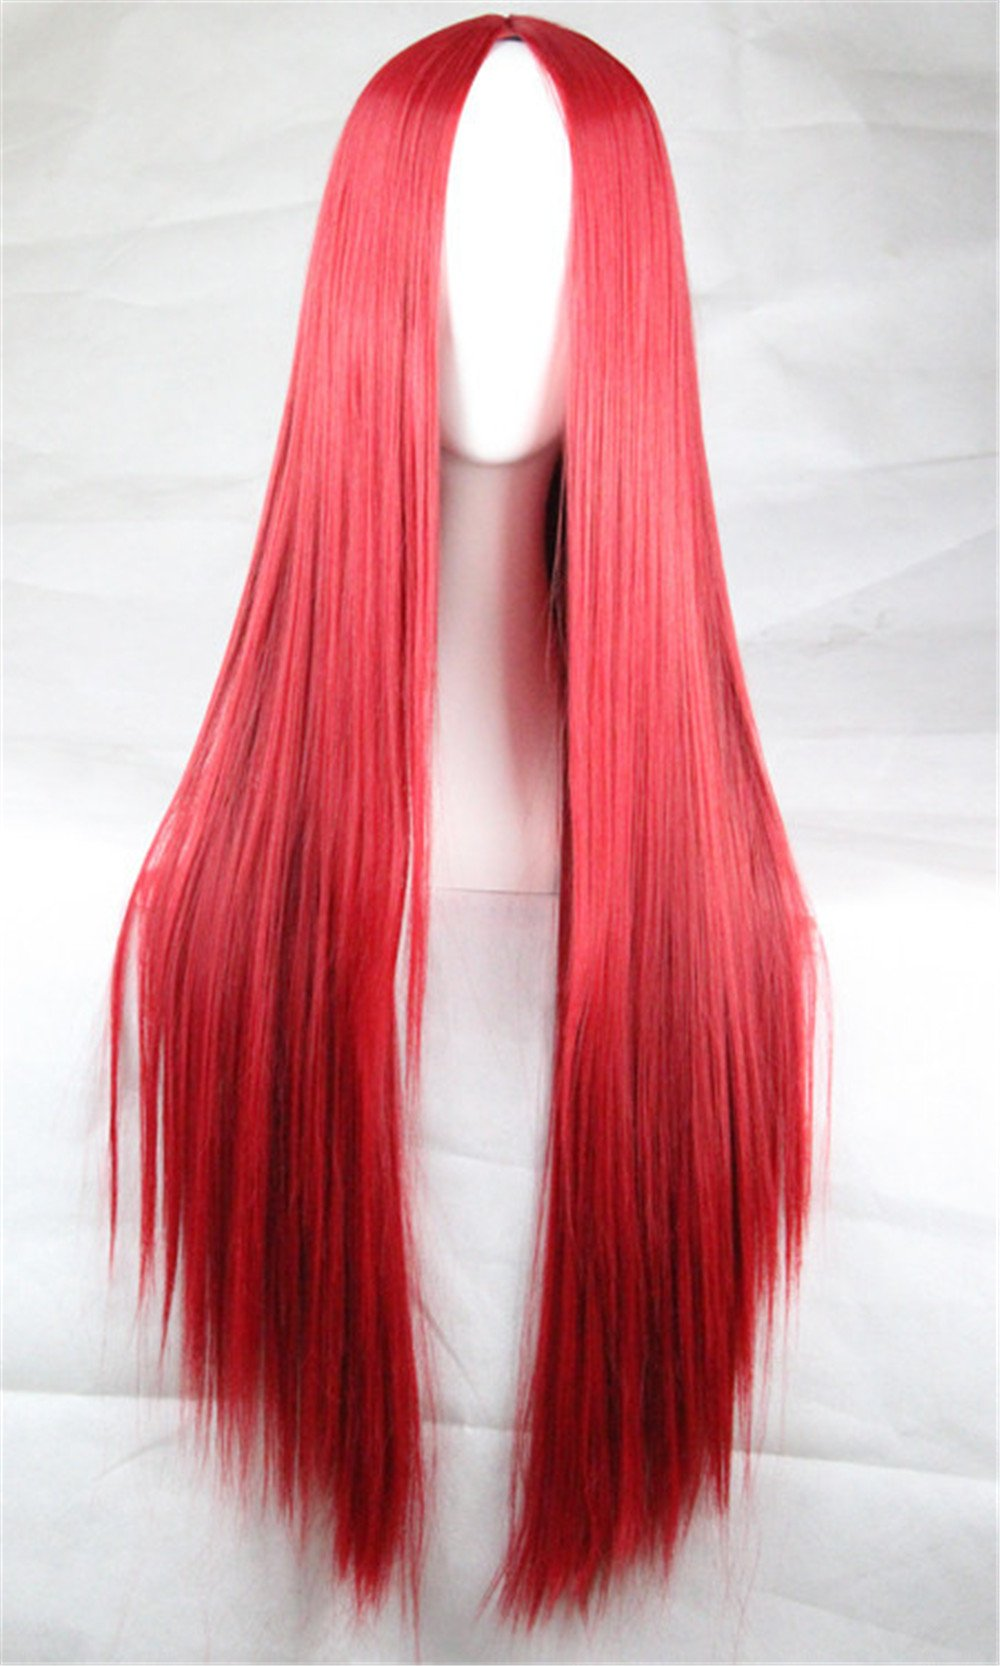 JYWIGS 100CM Long Red Wig No Bangs Straight Cosplay Party Costume Hair Middle Parted Rose Network Free Hairnet Christmas Gift